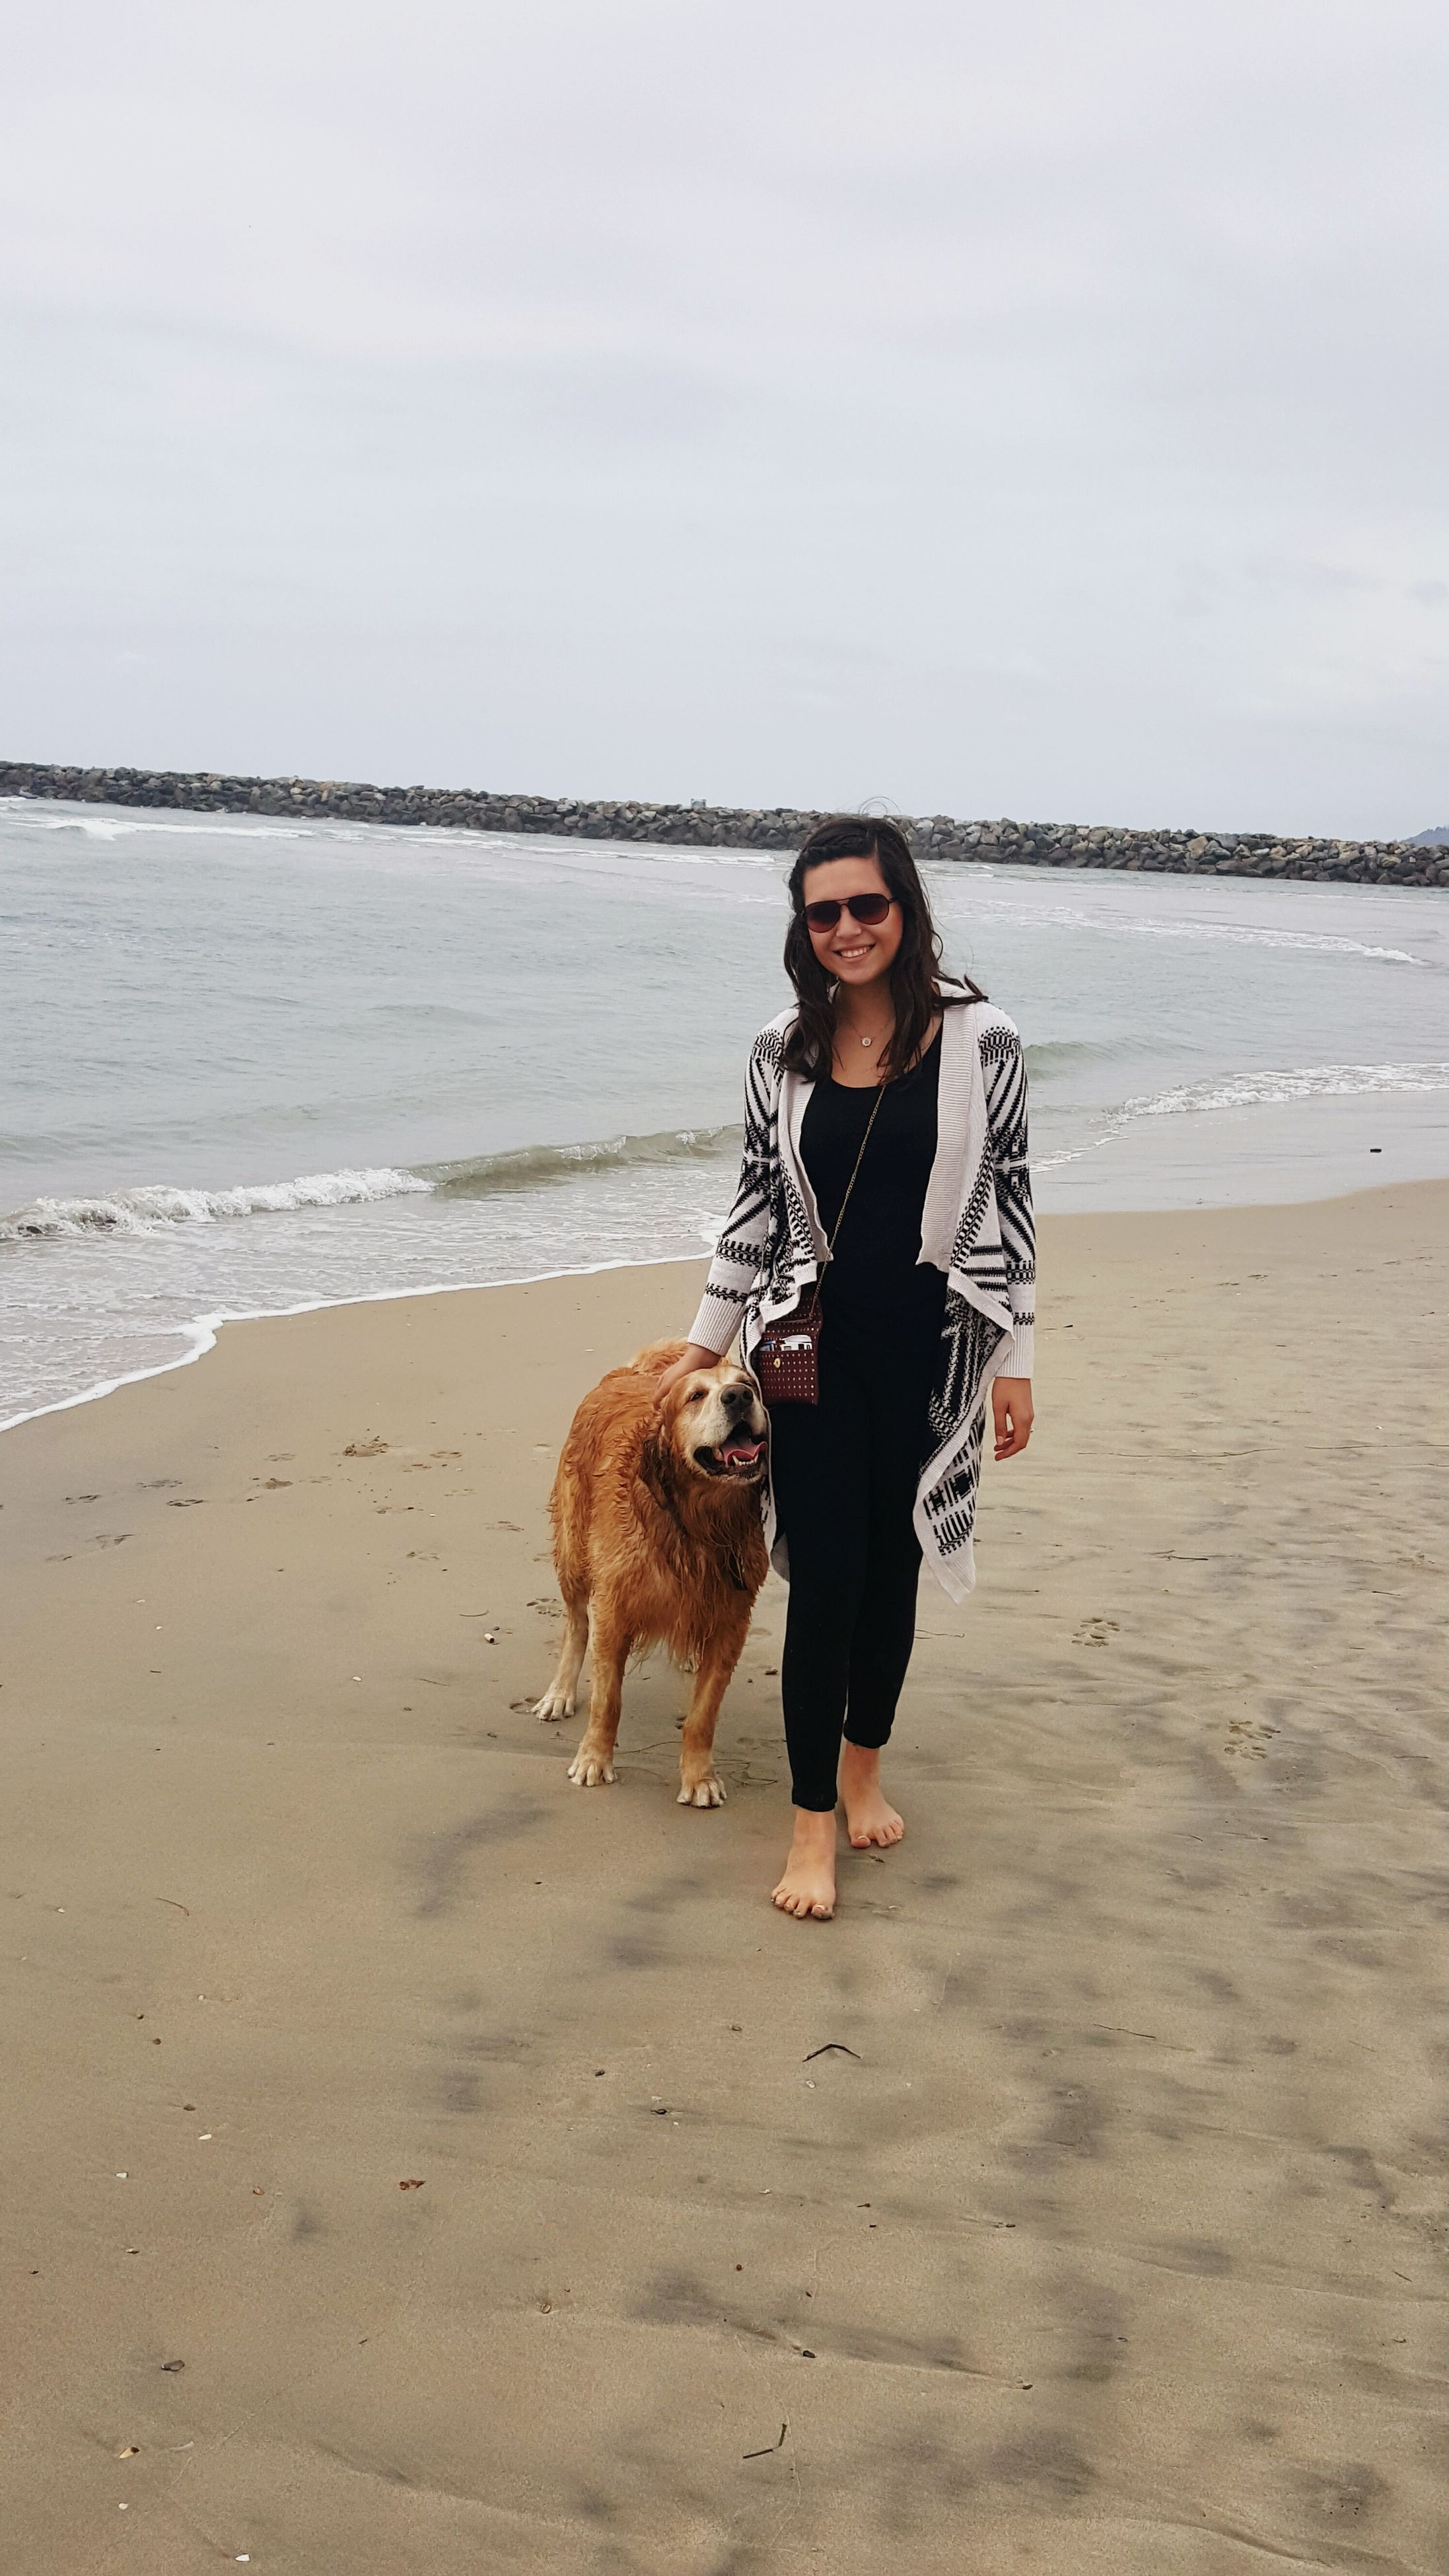 beach, portrait, sea, sand, looking at camera, shore, water, person, domestic animals, young adult, full length, lifestyles, leisure activity, dog, mammal, pets, animal themes, one animal